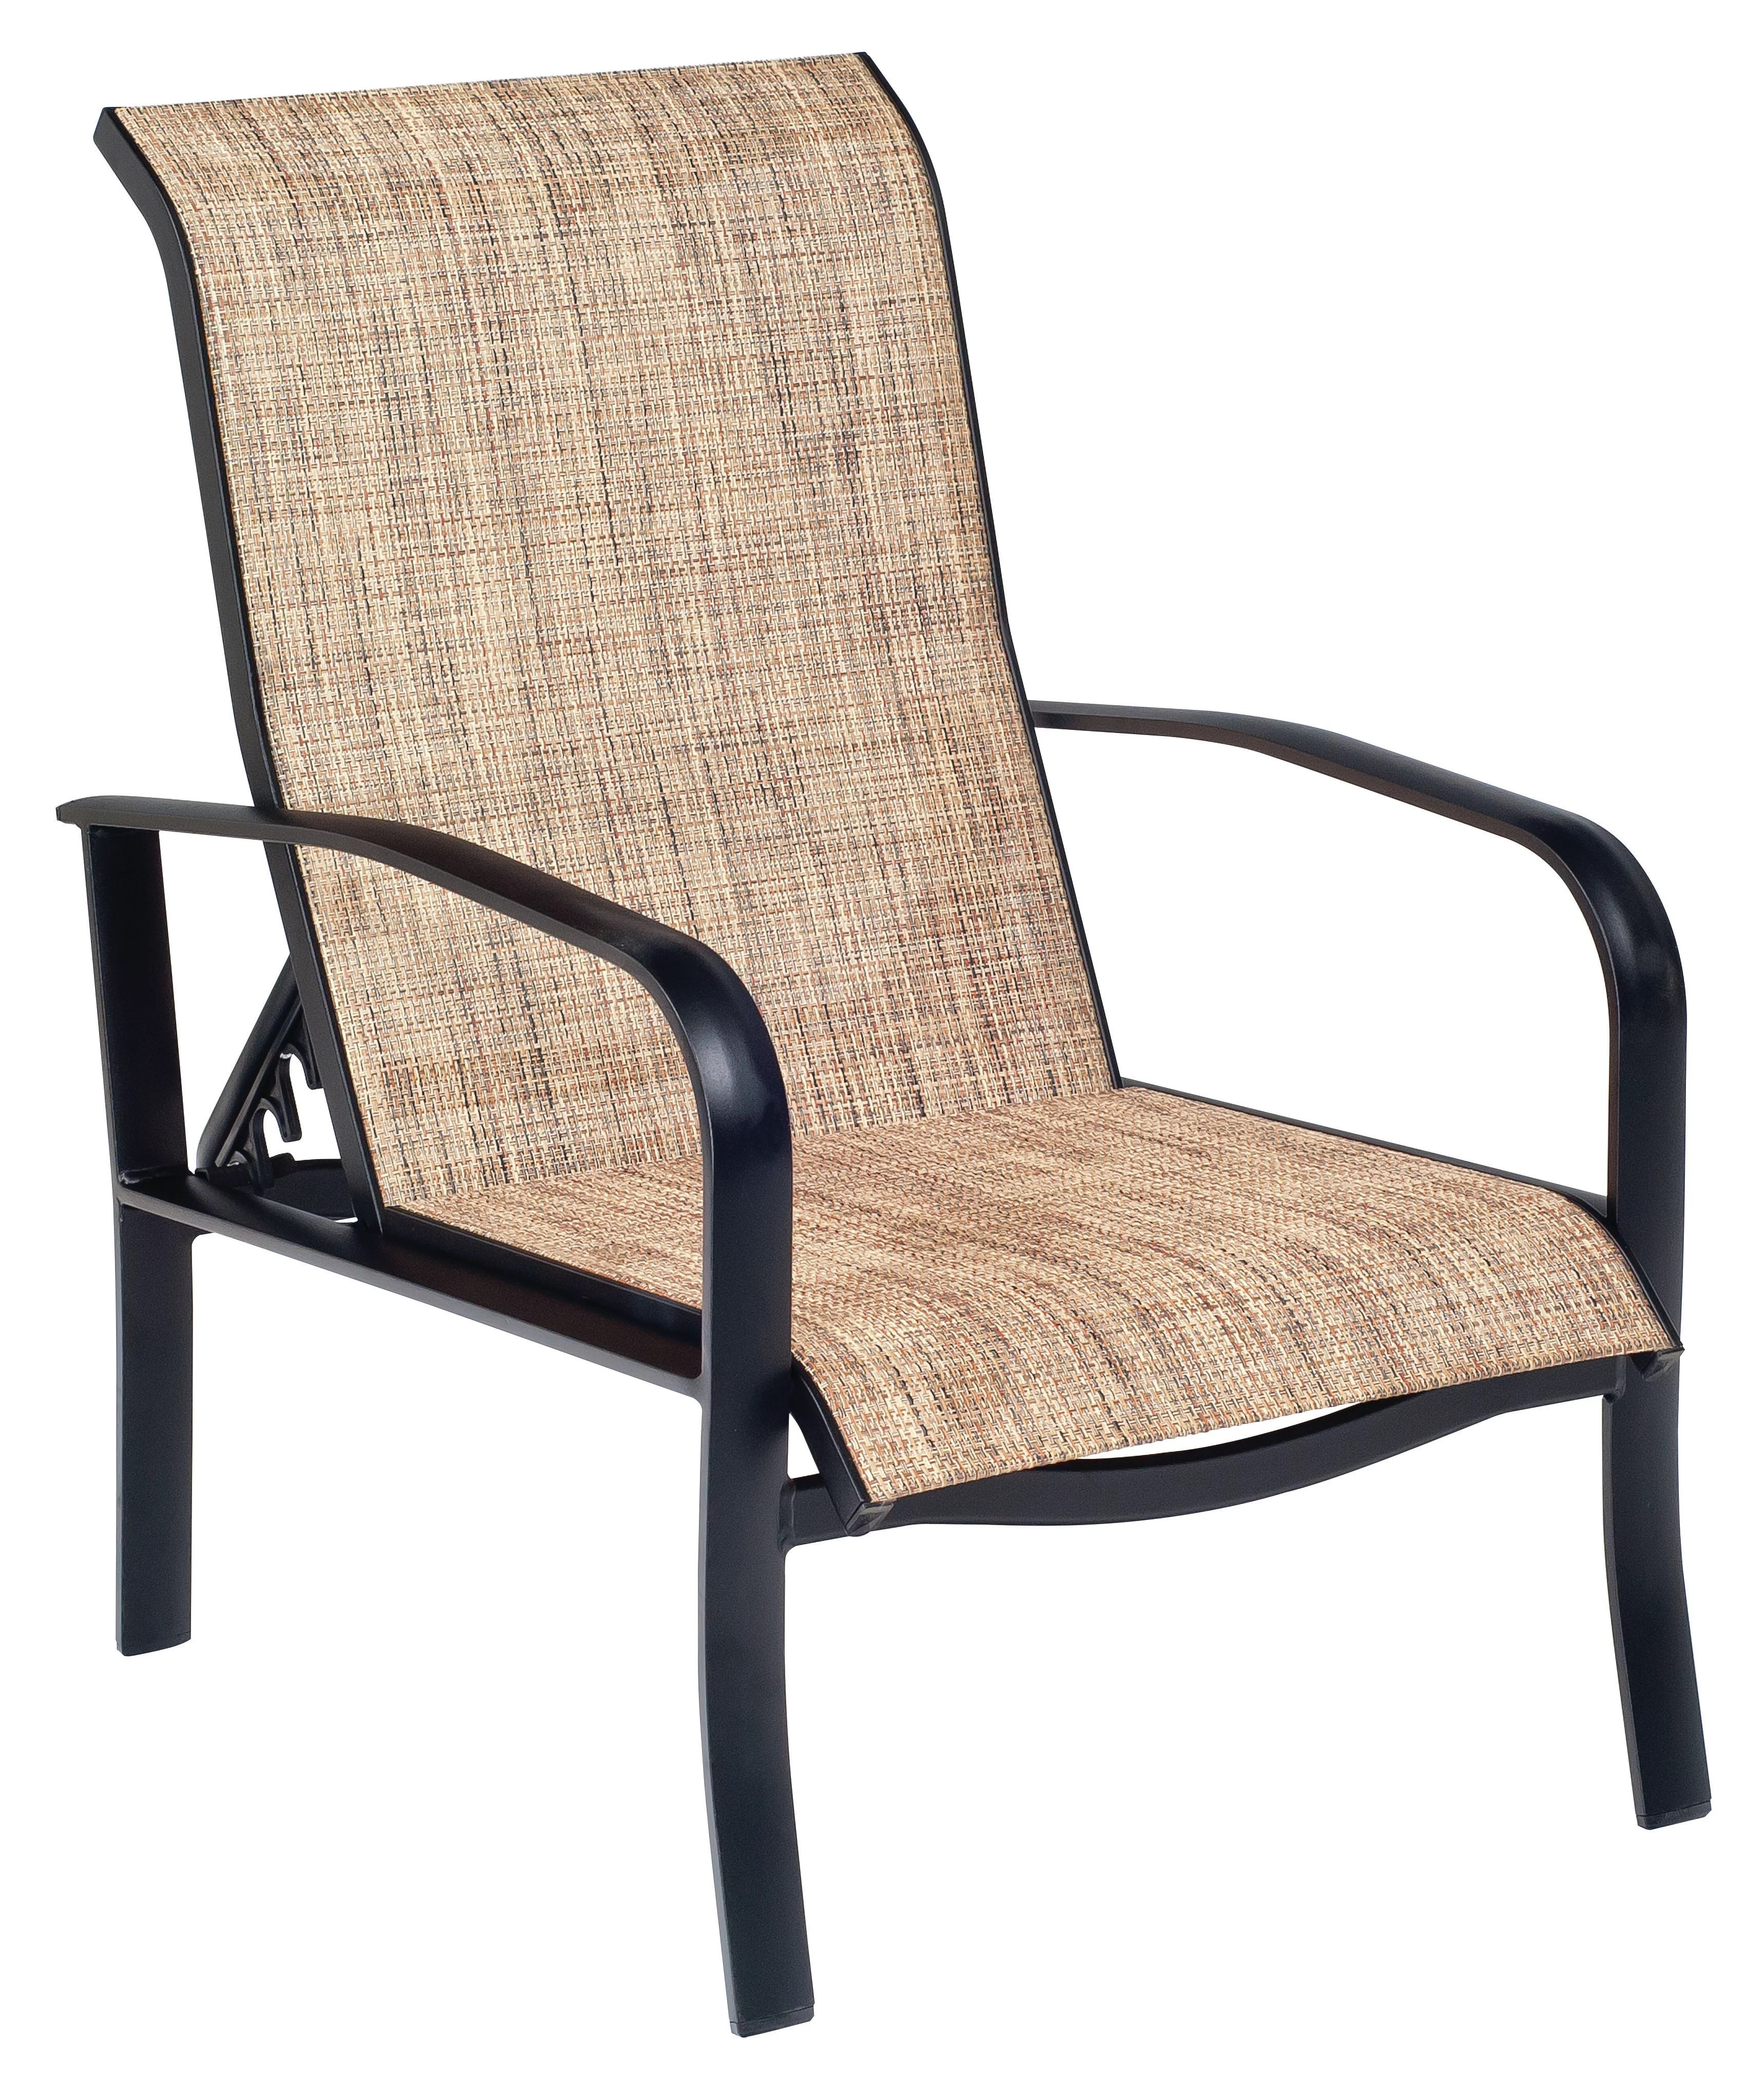 fremont recliner patio chair